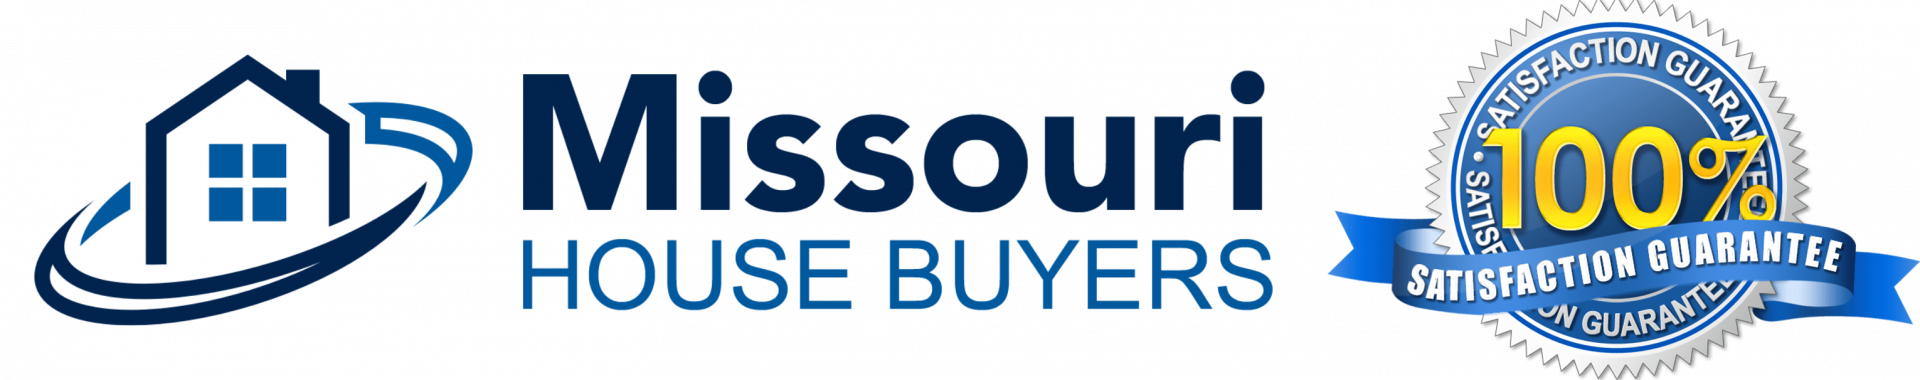 Missouri House Buyers logo